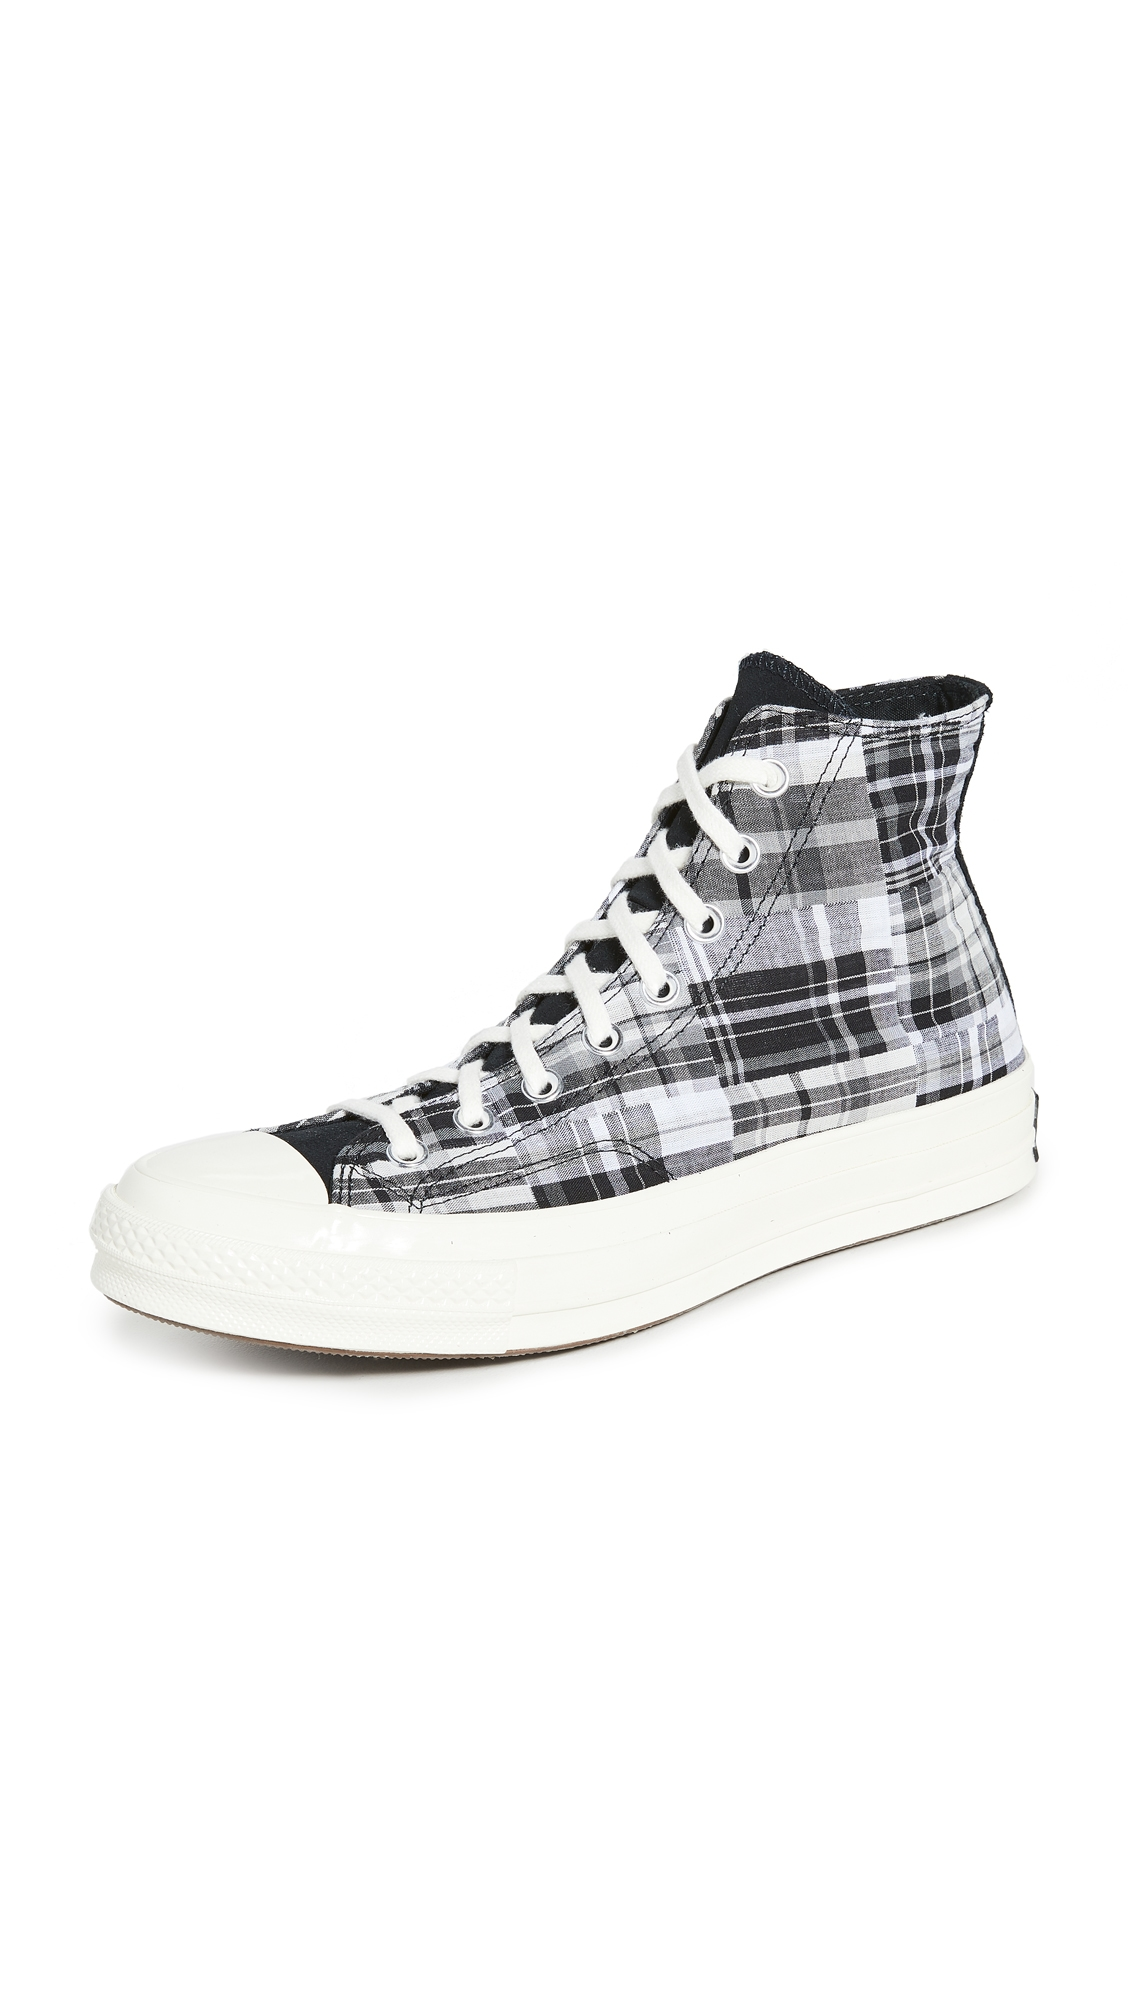 Converse High-tops CHUCK 70 TWISTED PREP HIGH TOP SNEAKERS